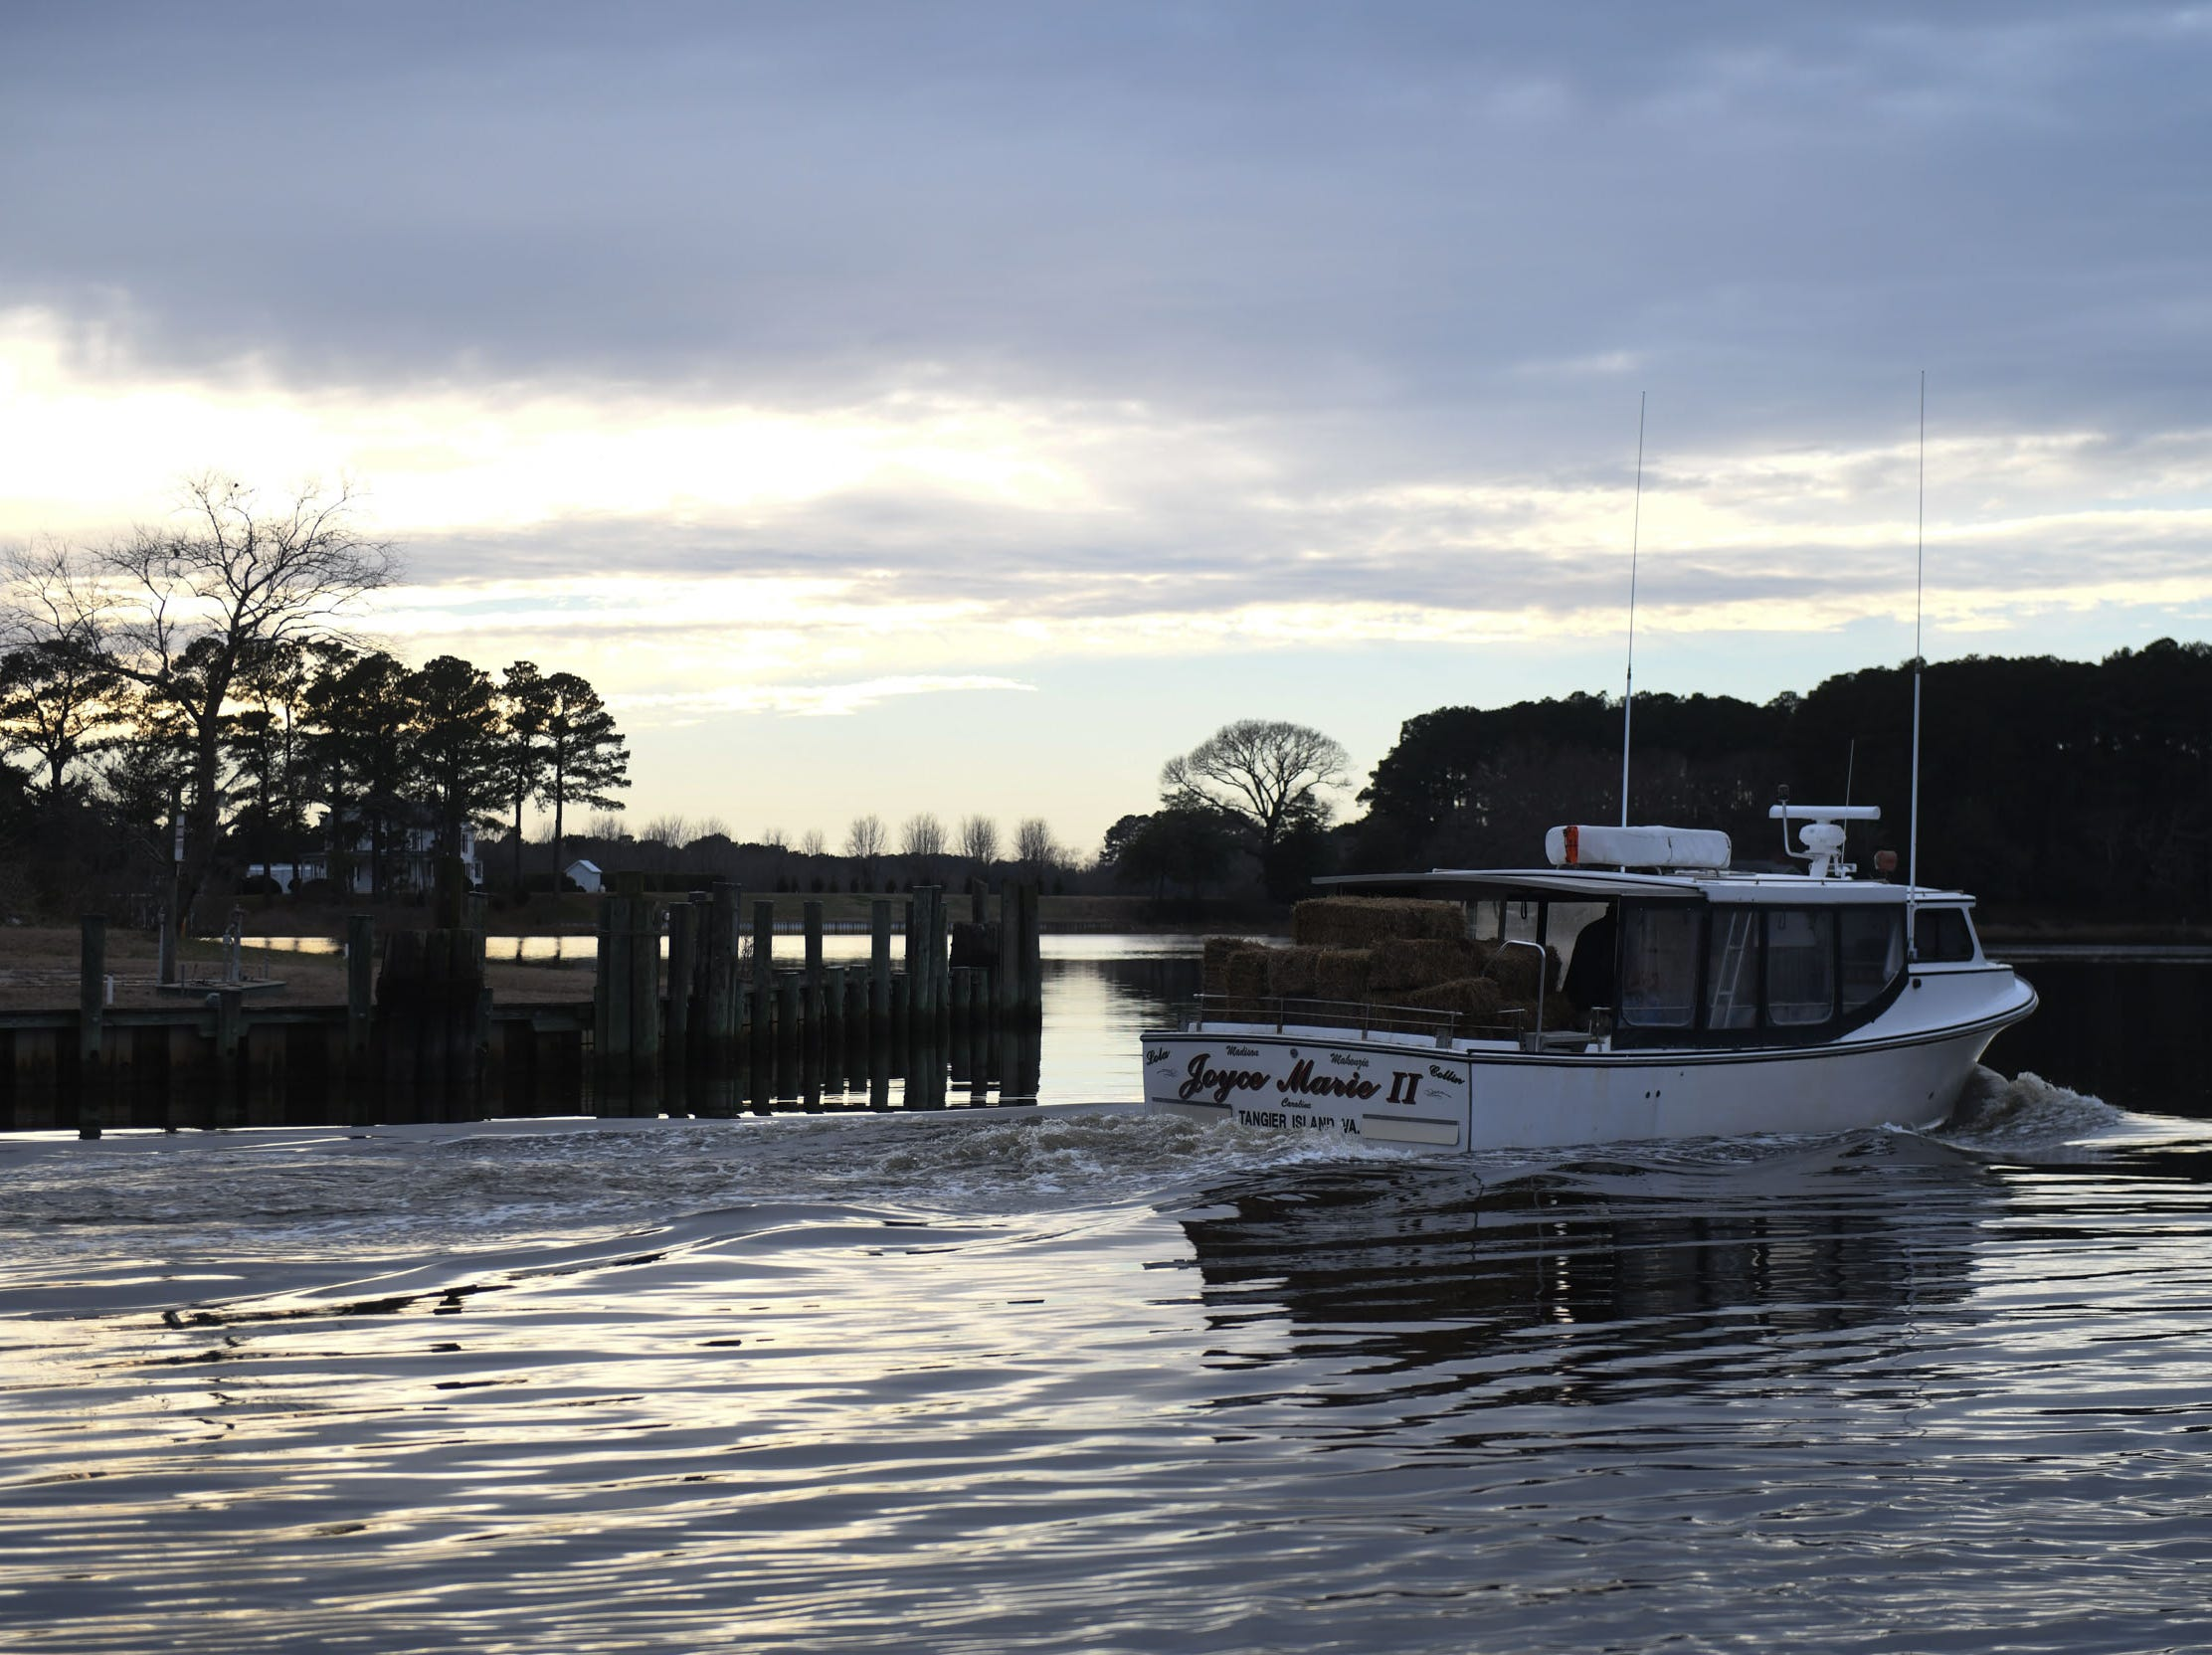 Joyce Marie II heads to Tangier Island after collecting water and hay donations on Monday, Jan. 28, 2019.